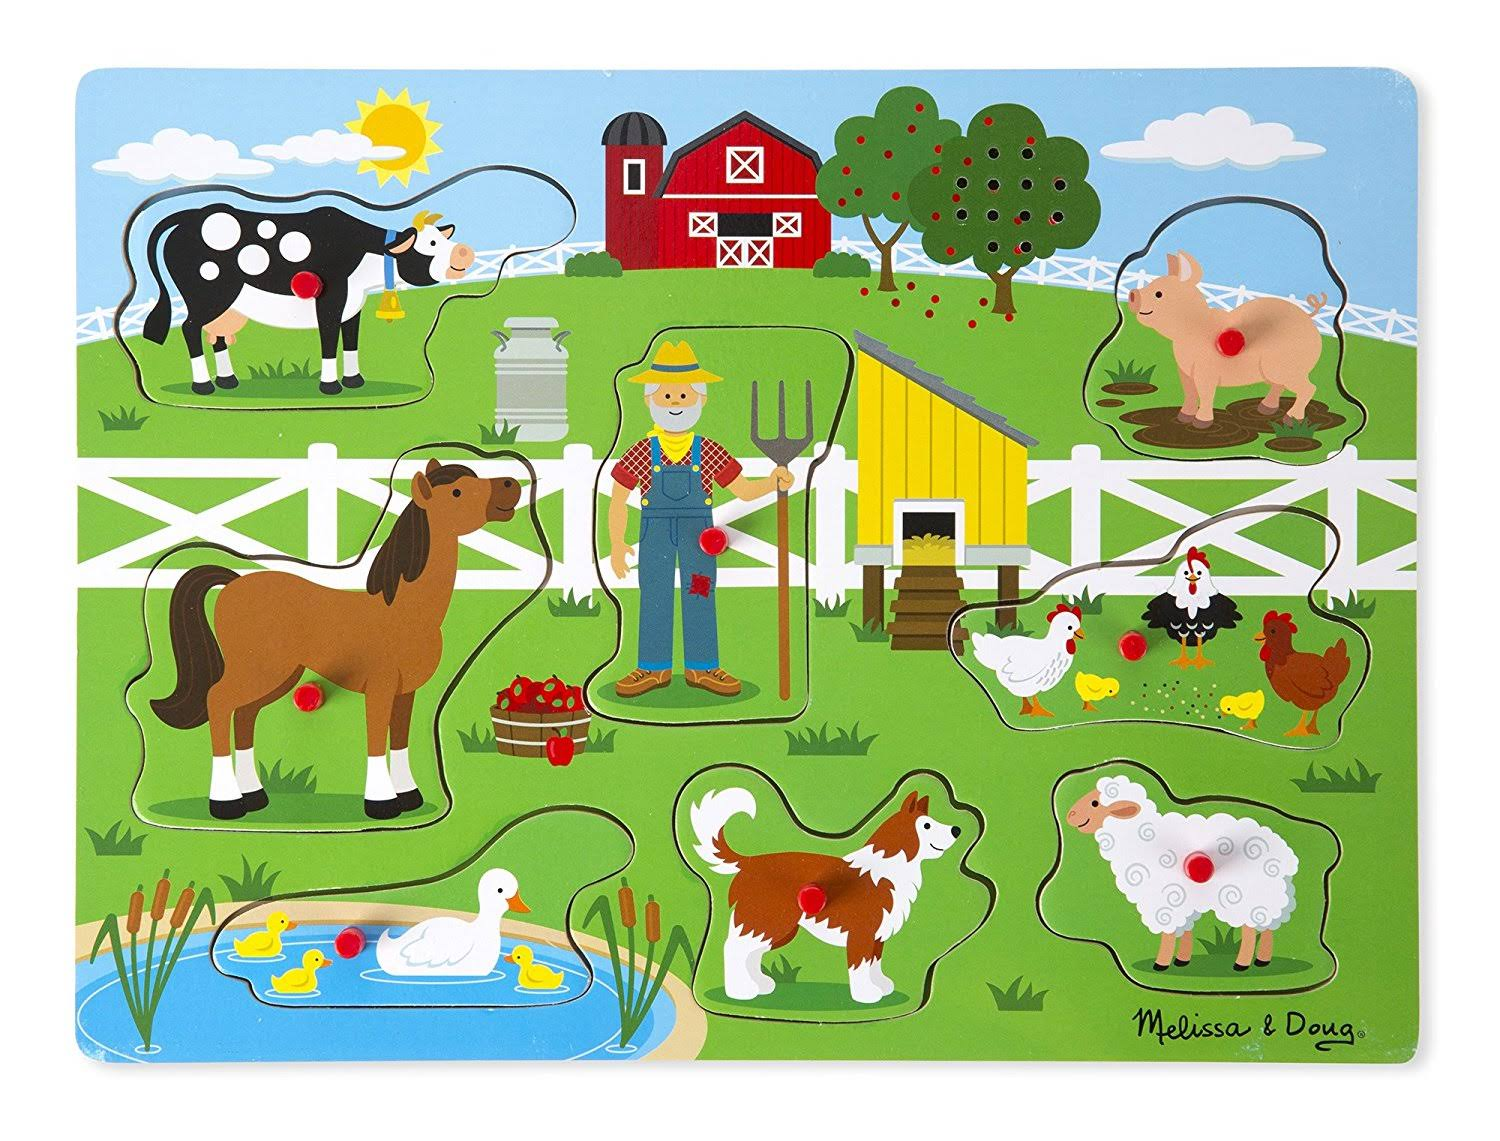 Melissa & Doug Sound Puzzle- Old MacDonald's Farm